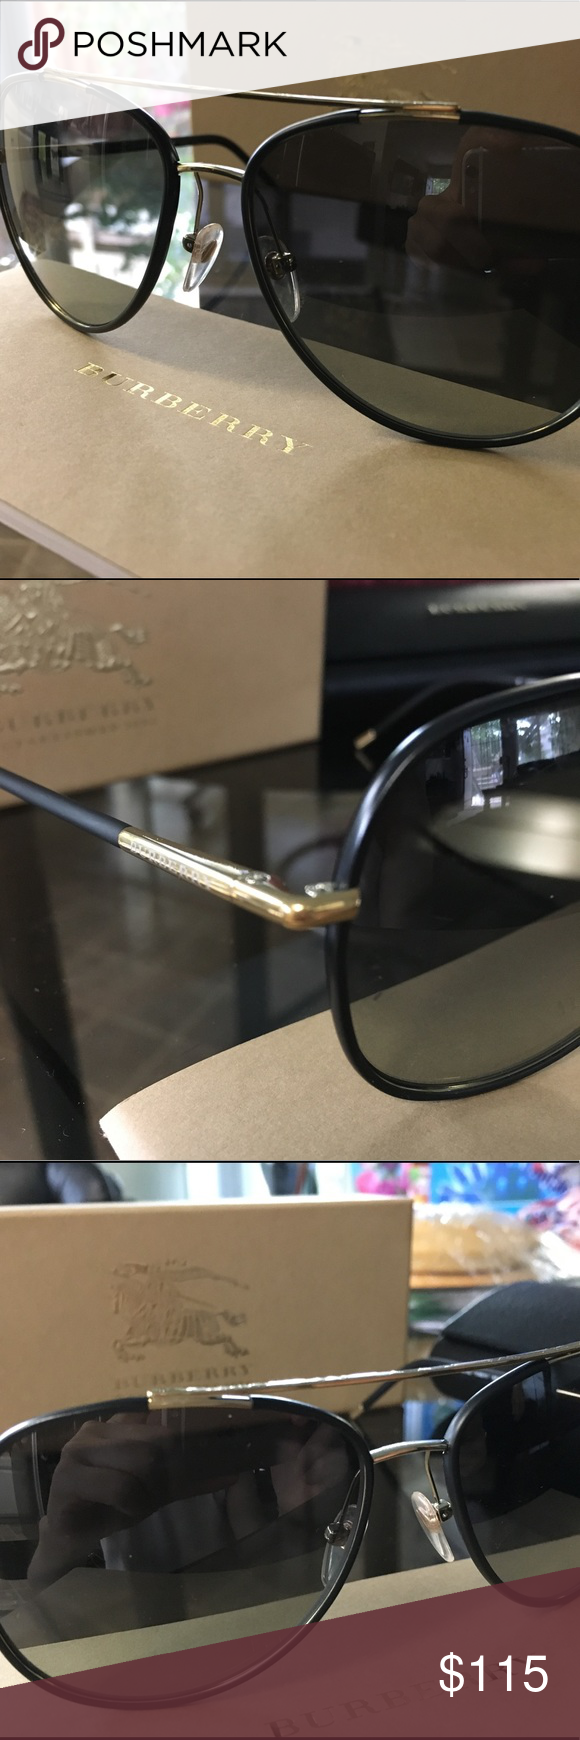 3a574f641e8 Spotted while shopping on Poshmark  🌟Burberry🌟 Brand New Sun Glasses!!!   poshmark  fashion  shopping  style  Burberry  Accessories